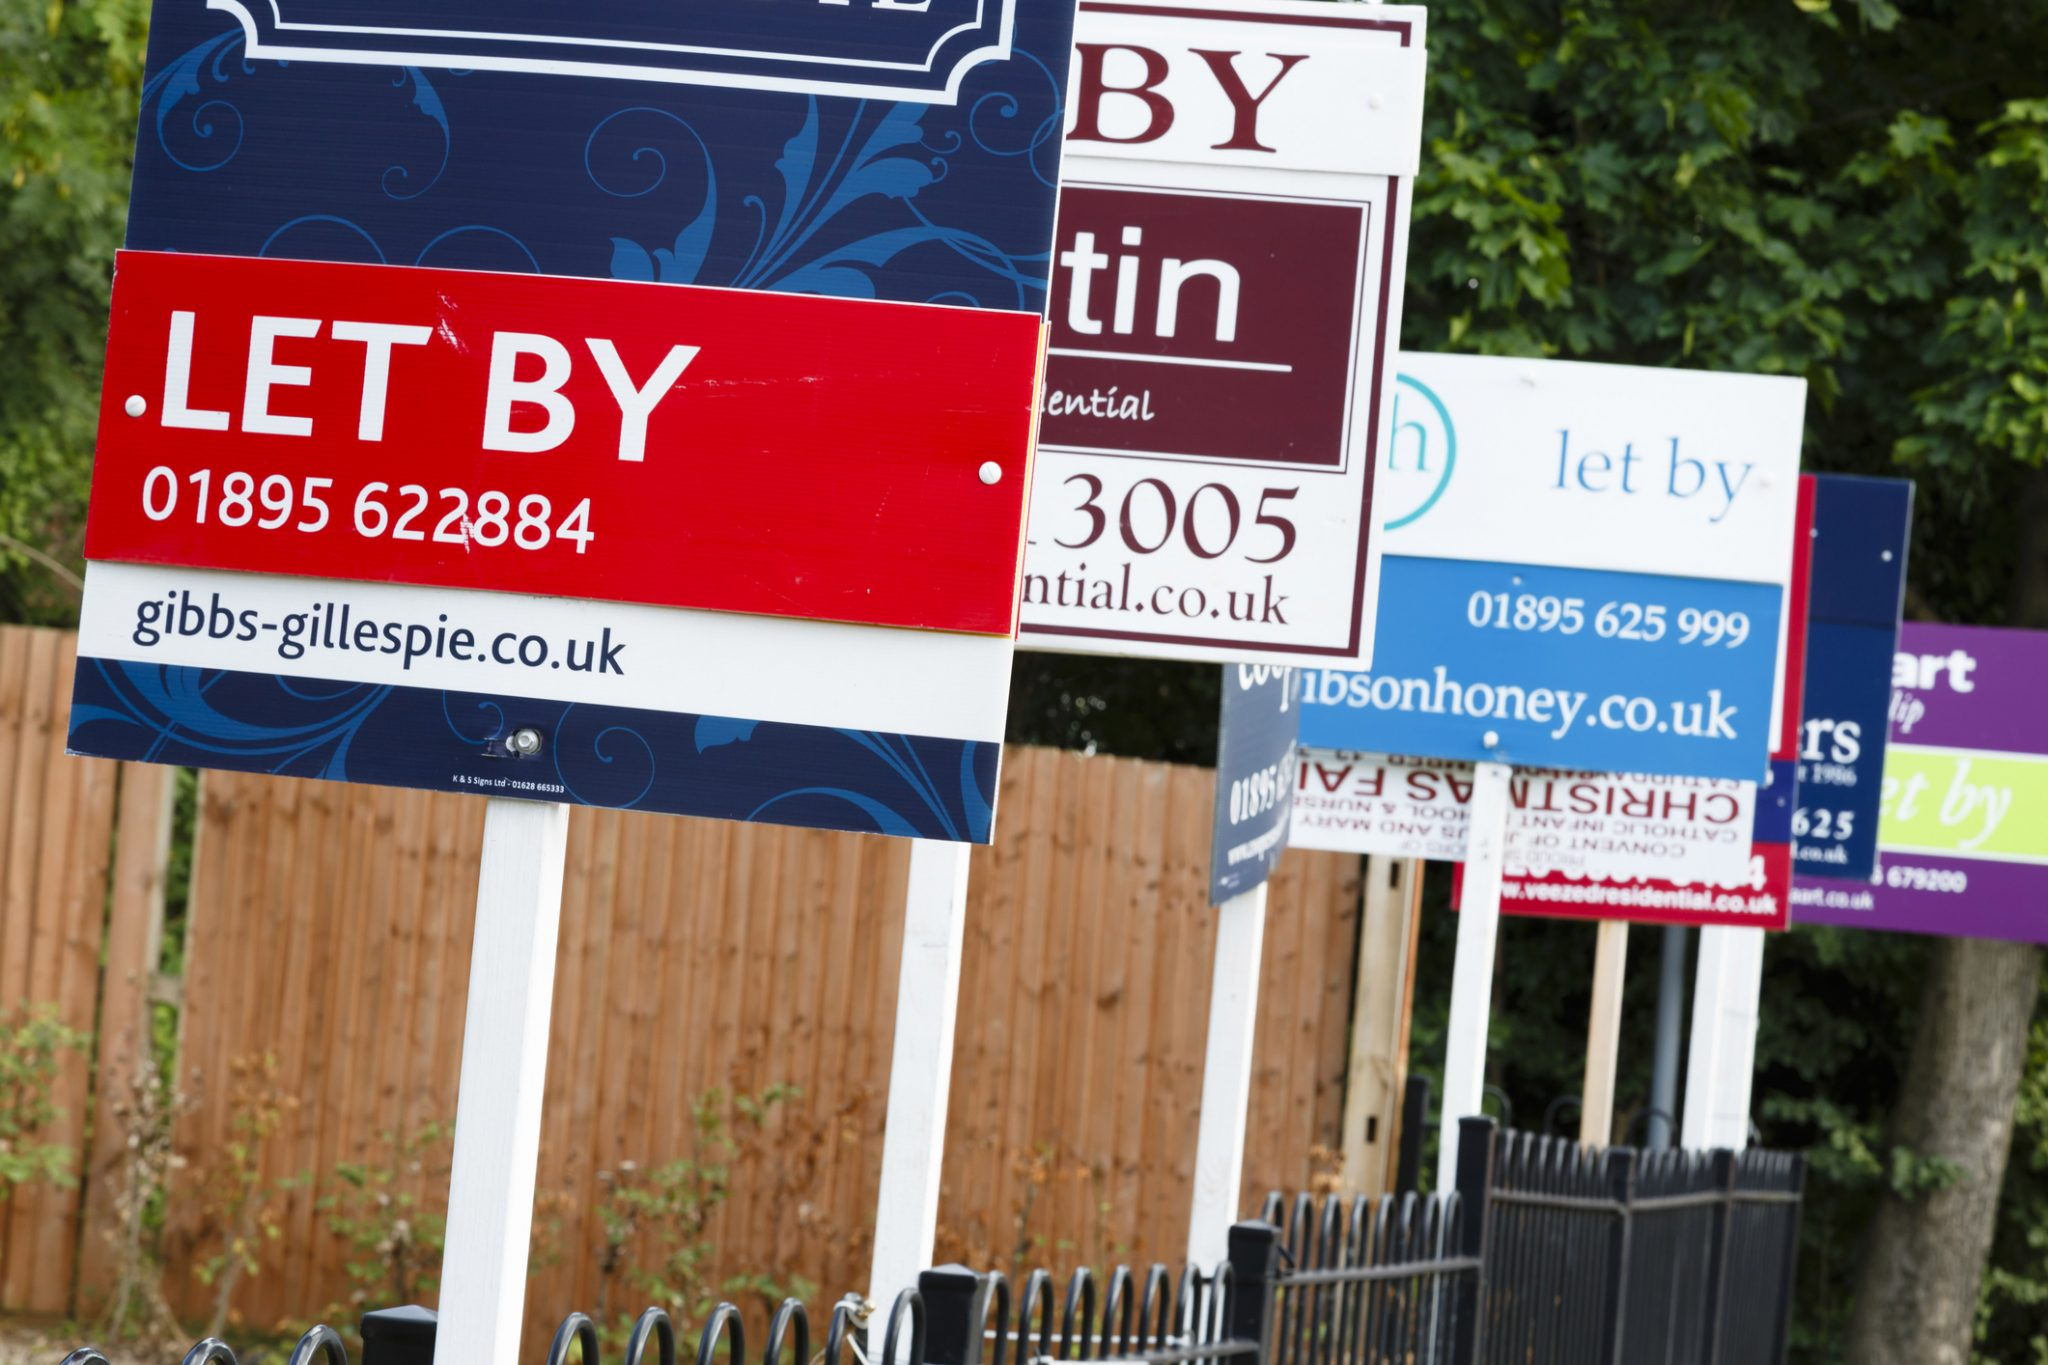 The UK buy-to-let picture: tenant demand soaring as housing market lifts